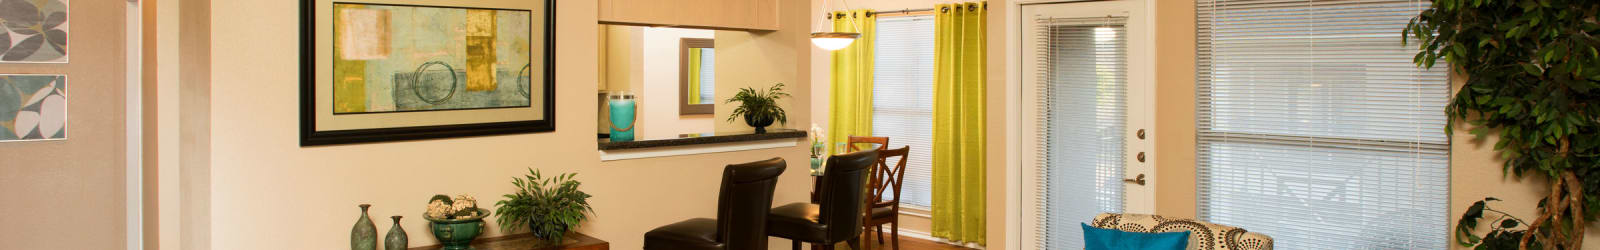 Guest suites at El Lago Apartments in McKinney, Texas